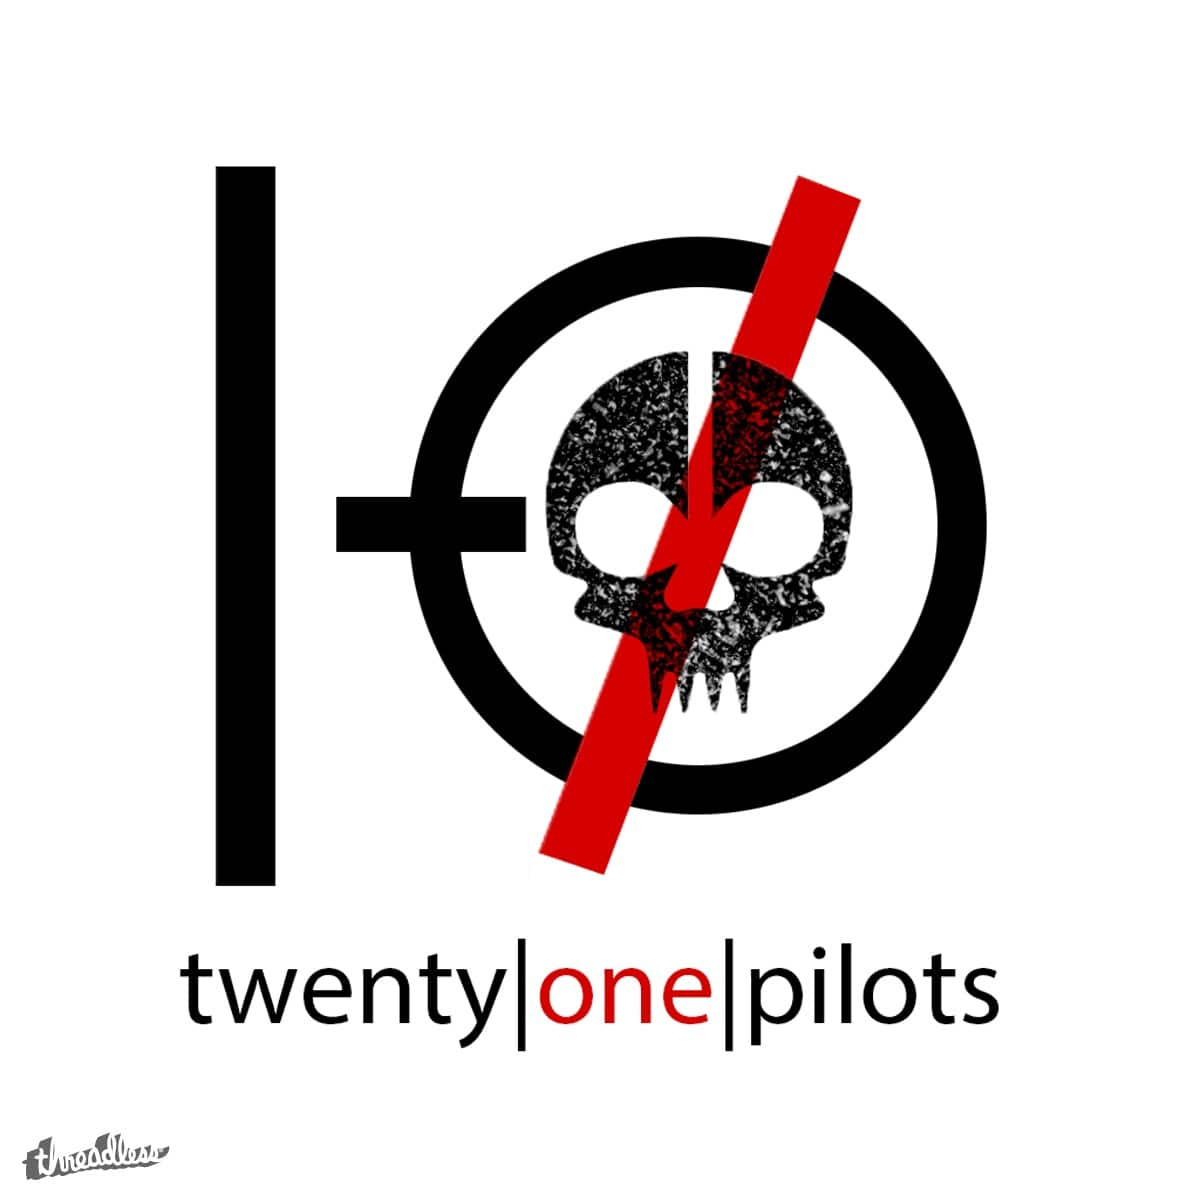 Skeleton One Twenty One Pilots Skeleton